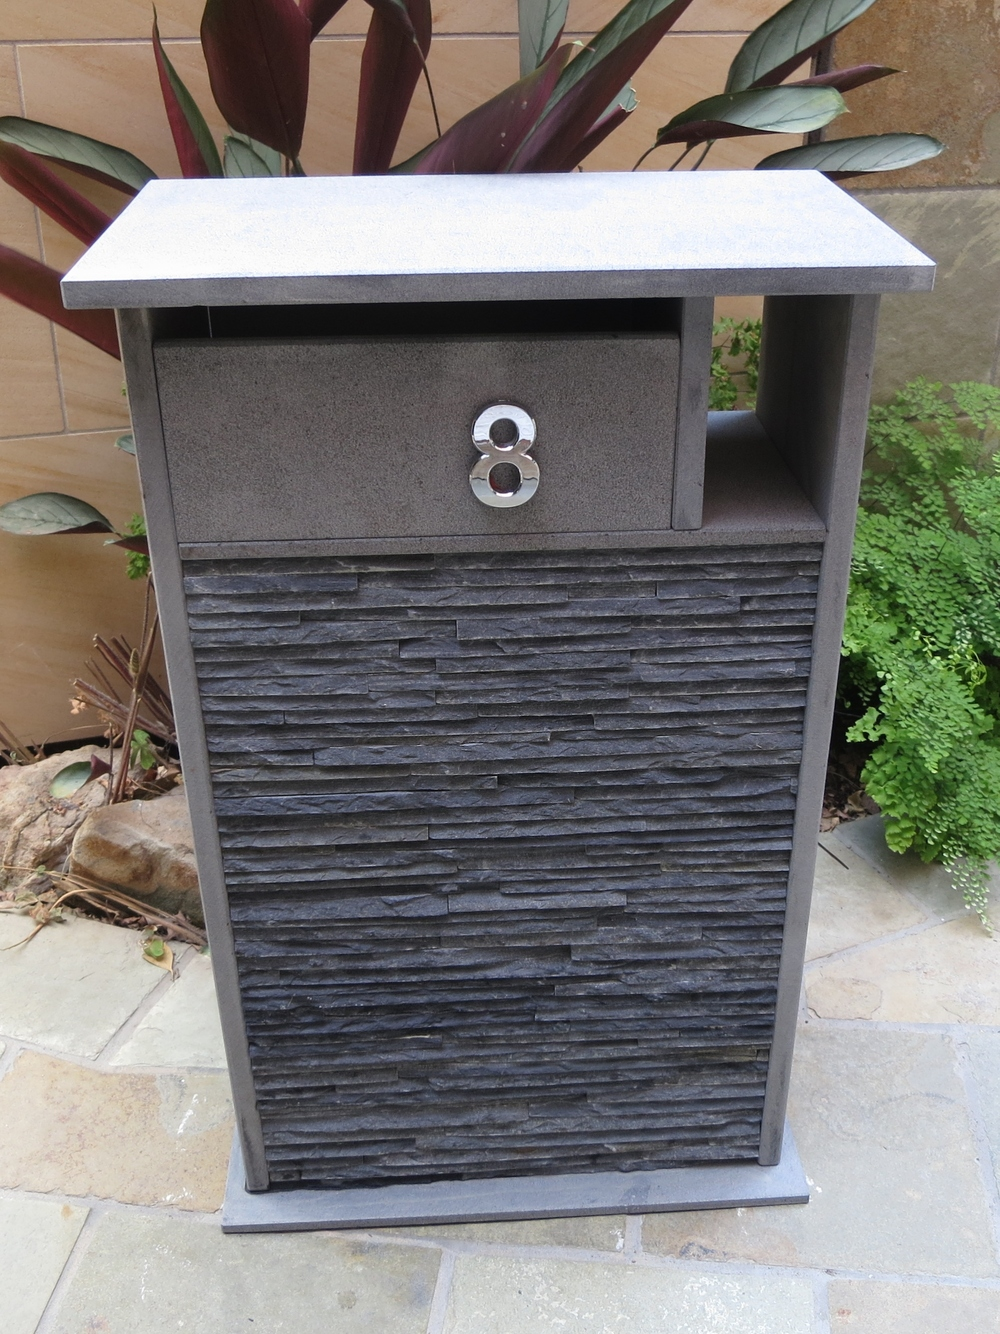 001 Blue stone custom made letterbox.JPG